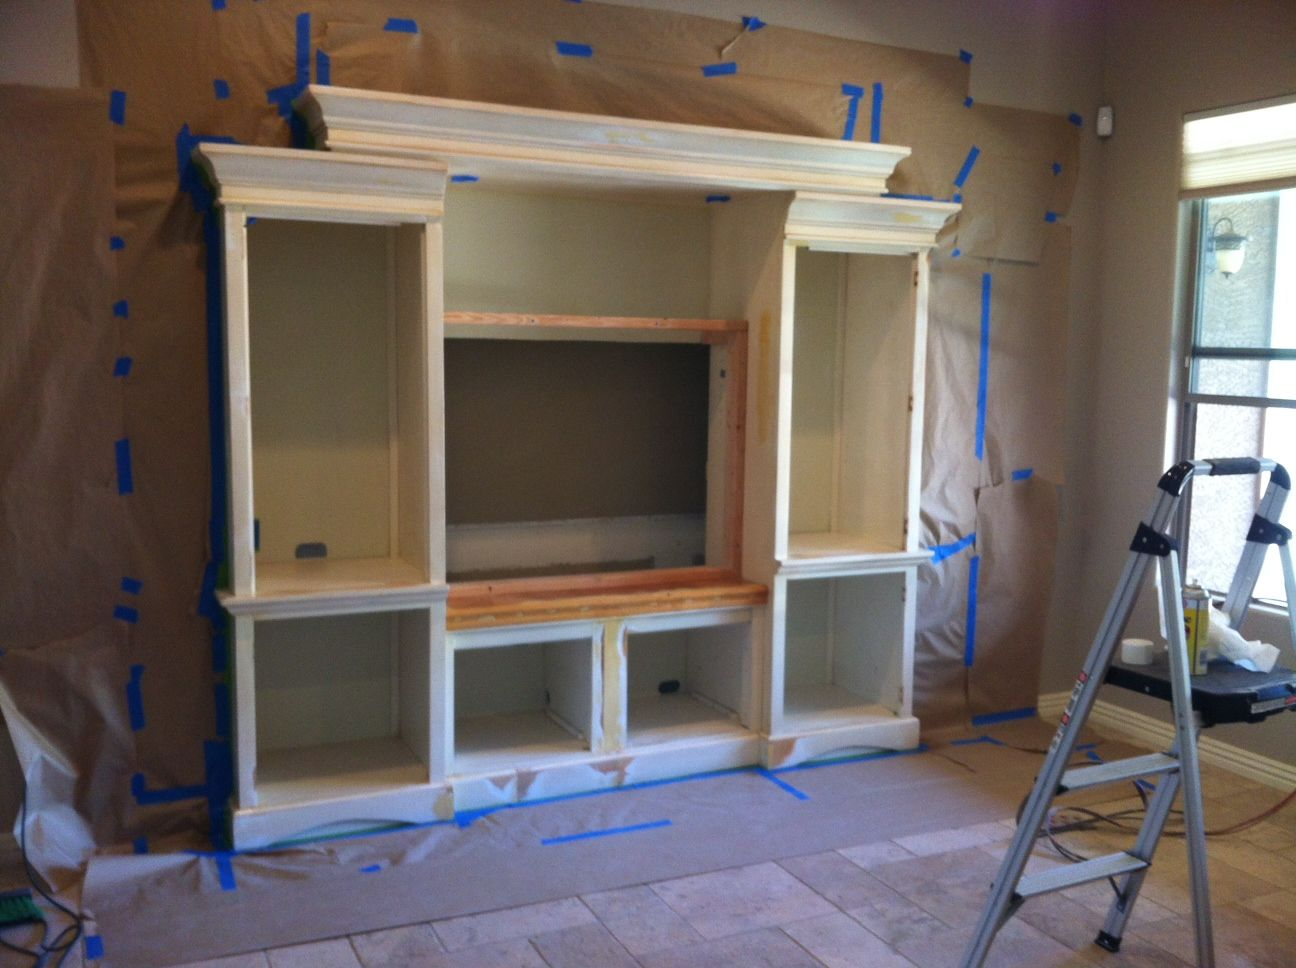 Built In Entertainment Center Design Ideas built in cabinets Adding A Custom Entertainment Center To A Standard Drywall Built In